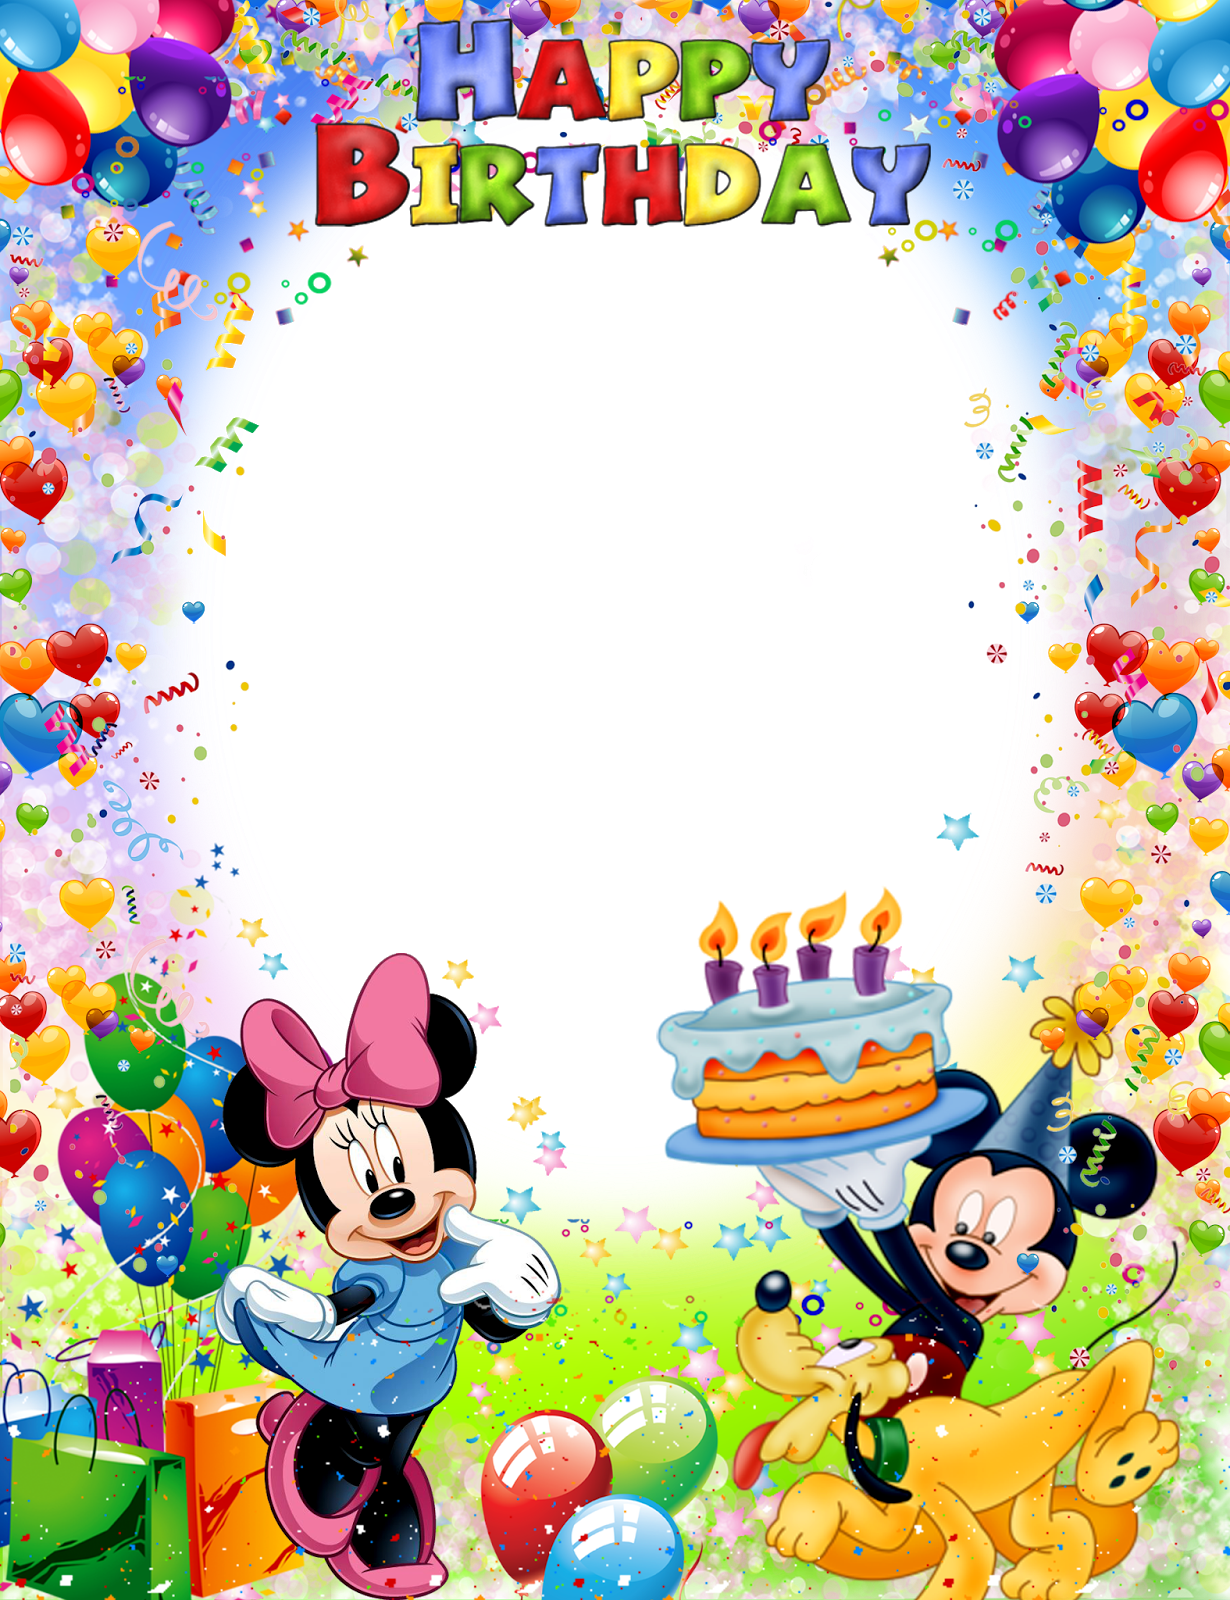 Birthday borders png. Cartoons pinterest birthdays